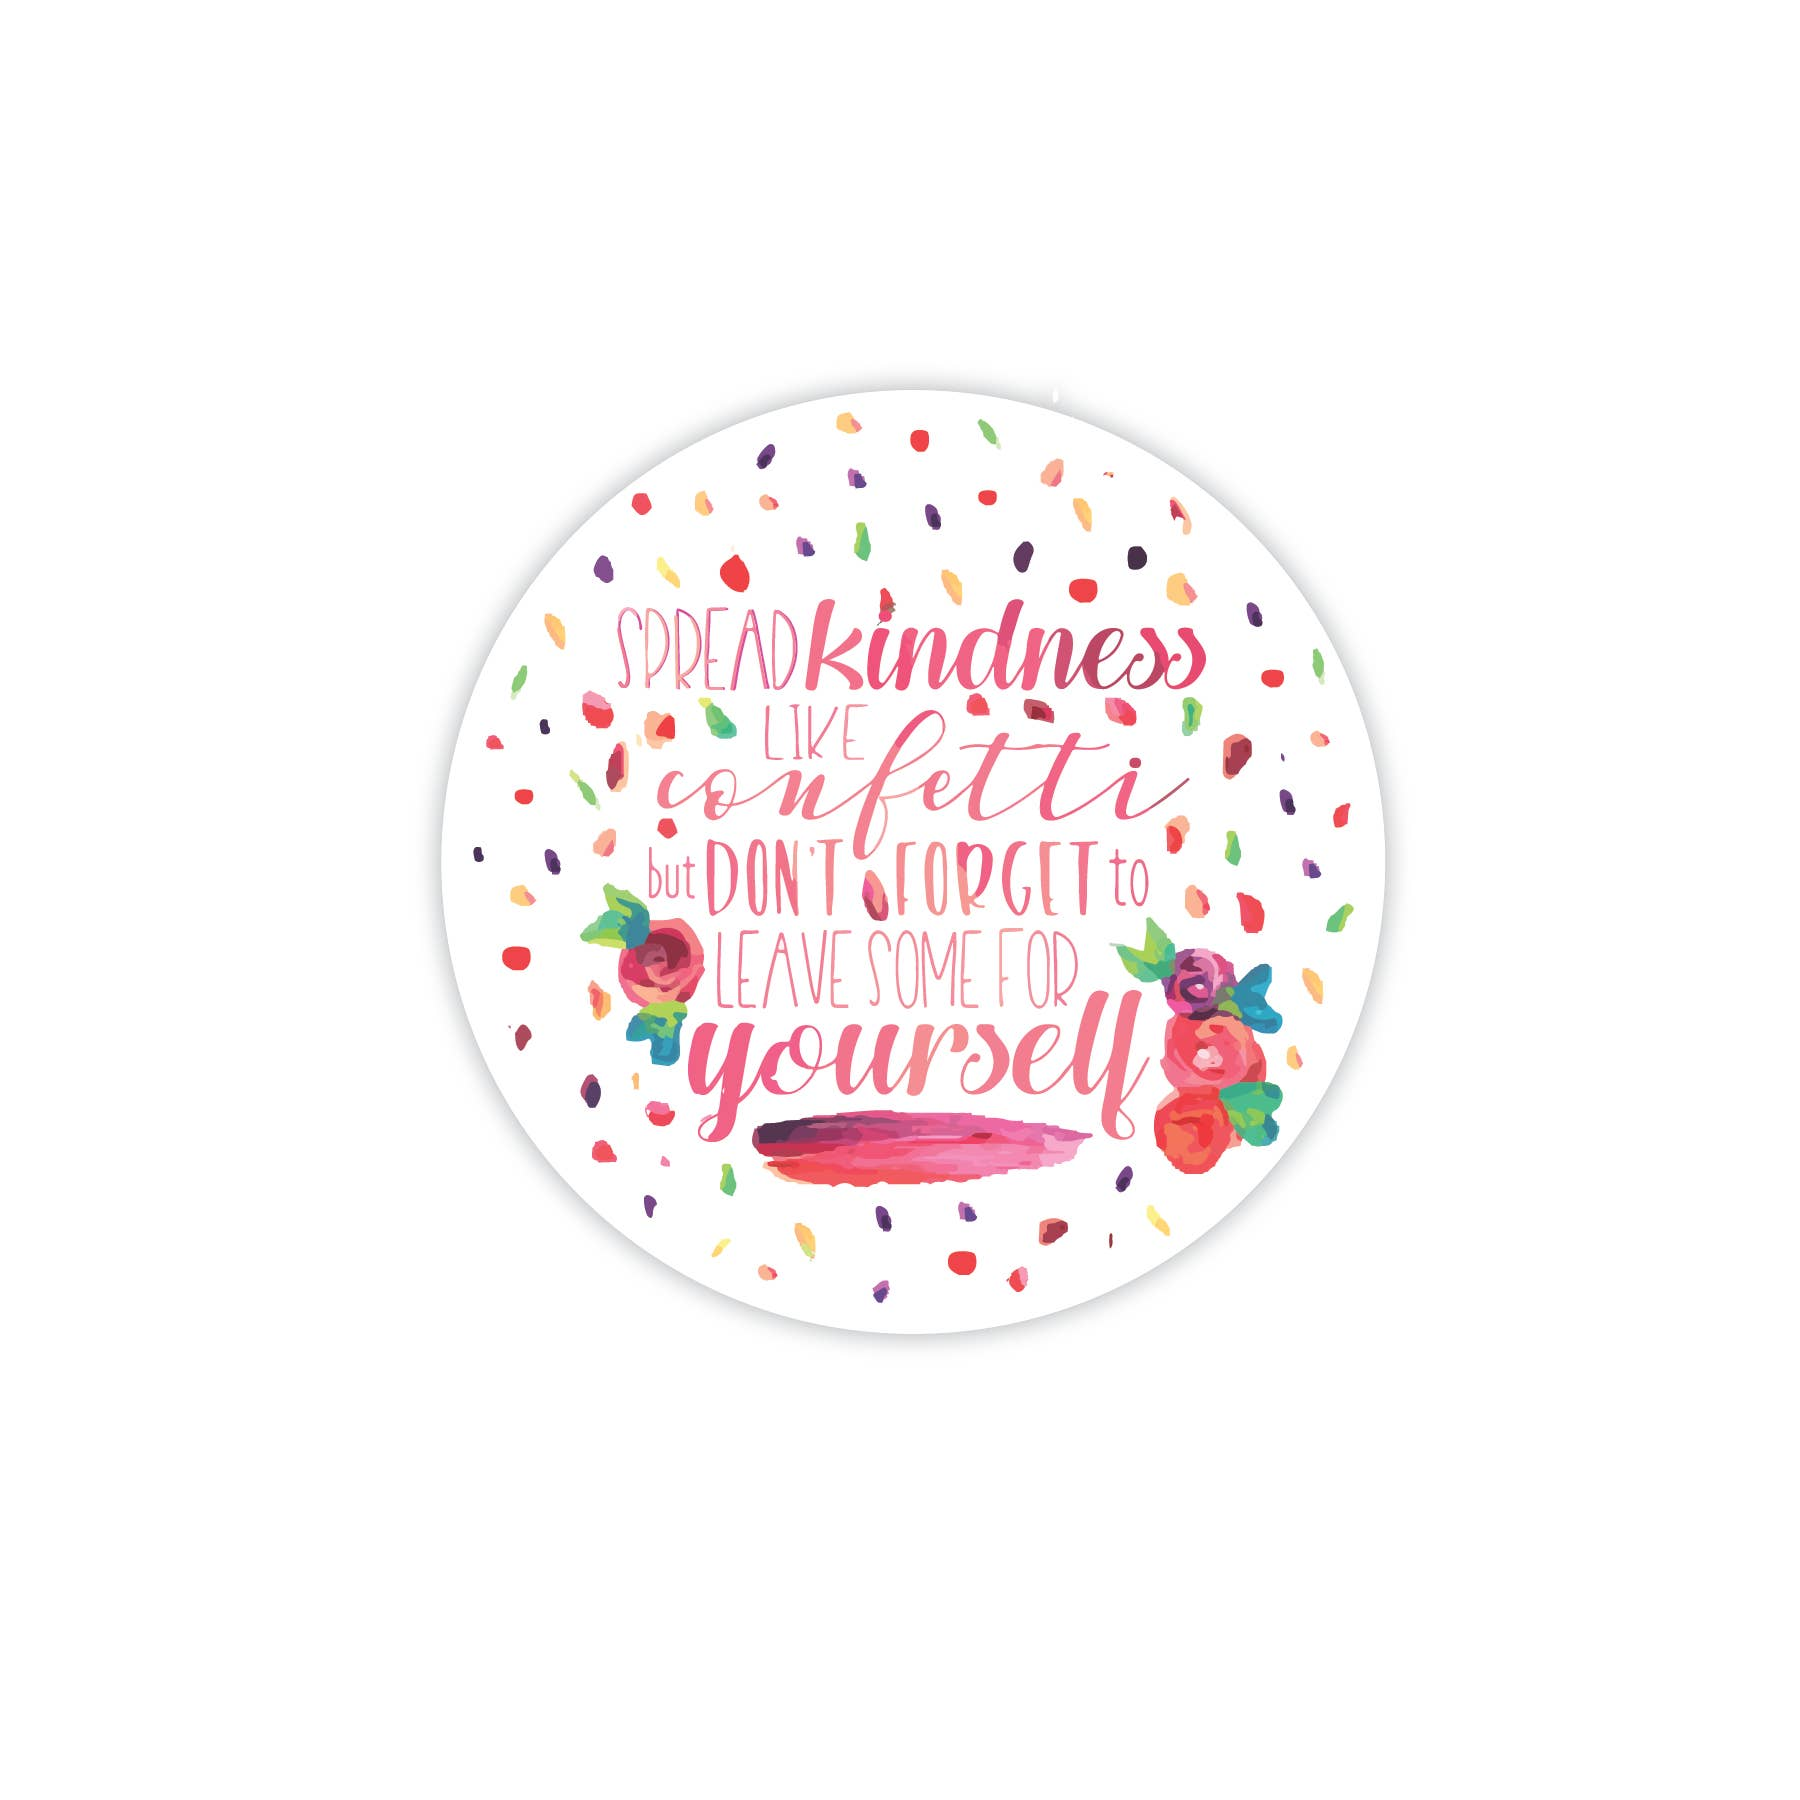 Kindness Small Bumper Sticker or Laptop Decal Bee Kind 3.25 X 4